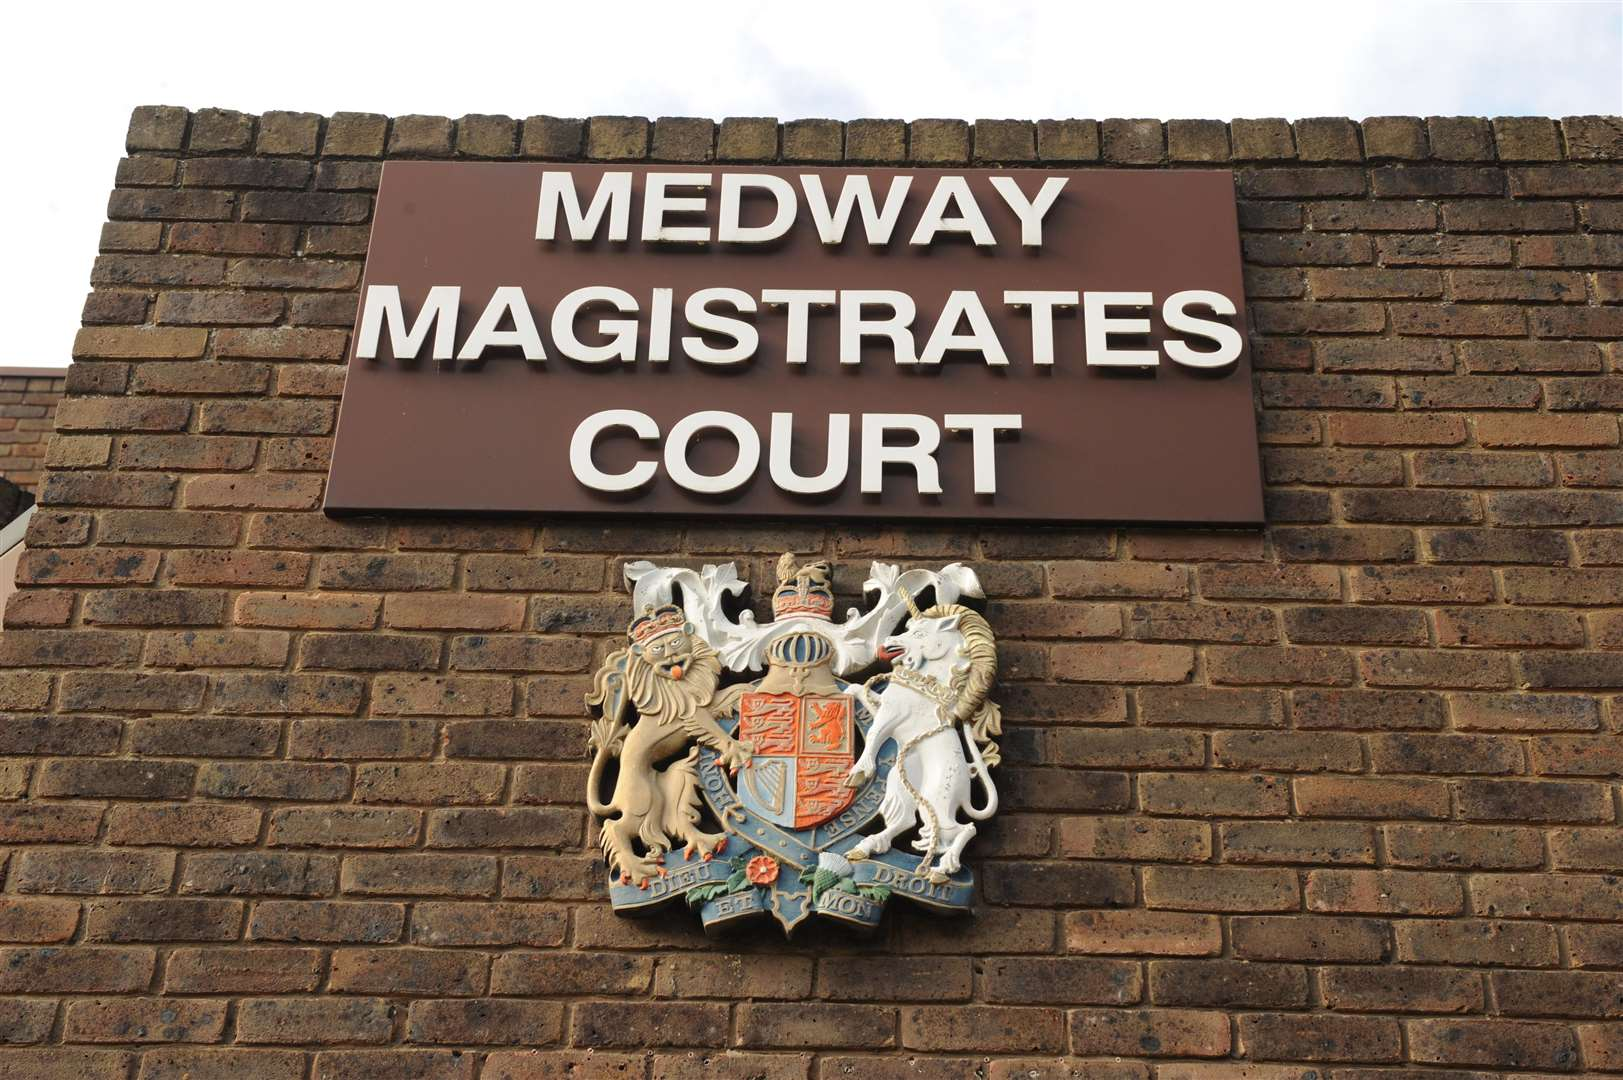 The woman who helped O'Brien, aged 25, was cautioned at Medway Magistrates' Court last November